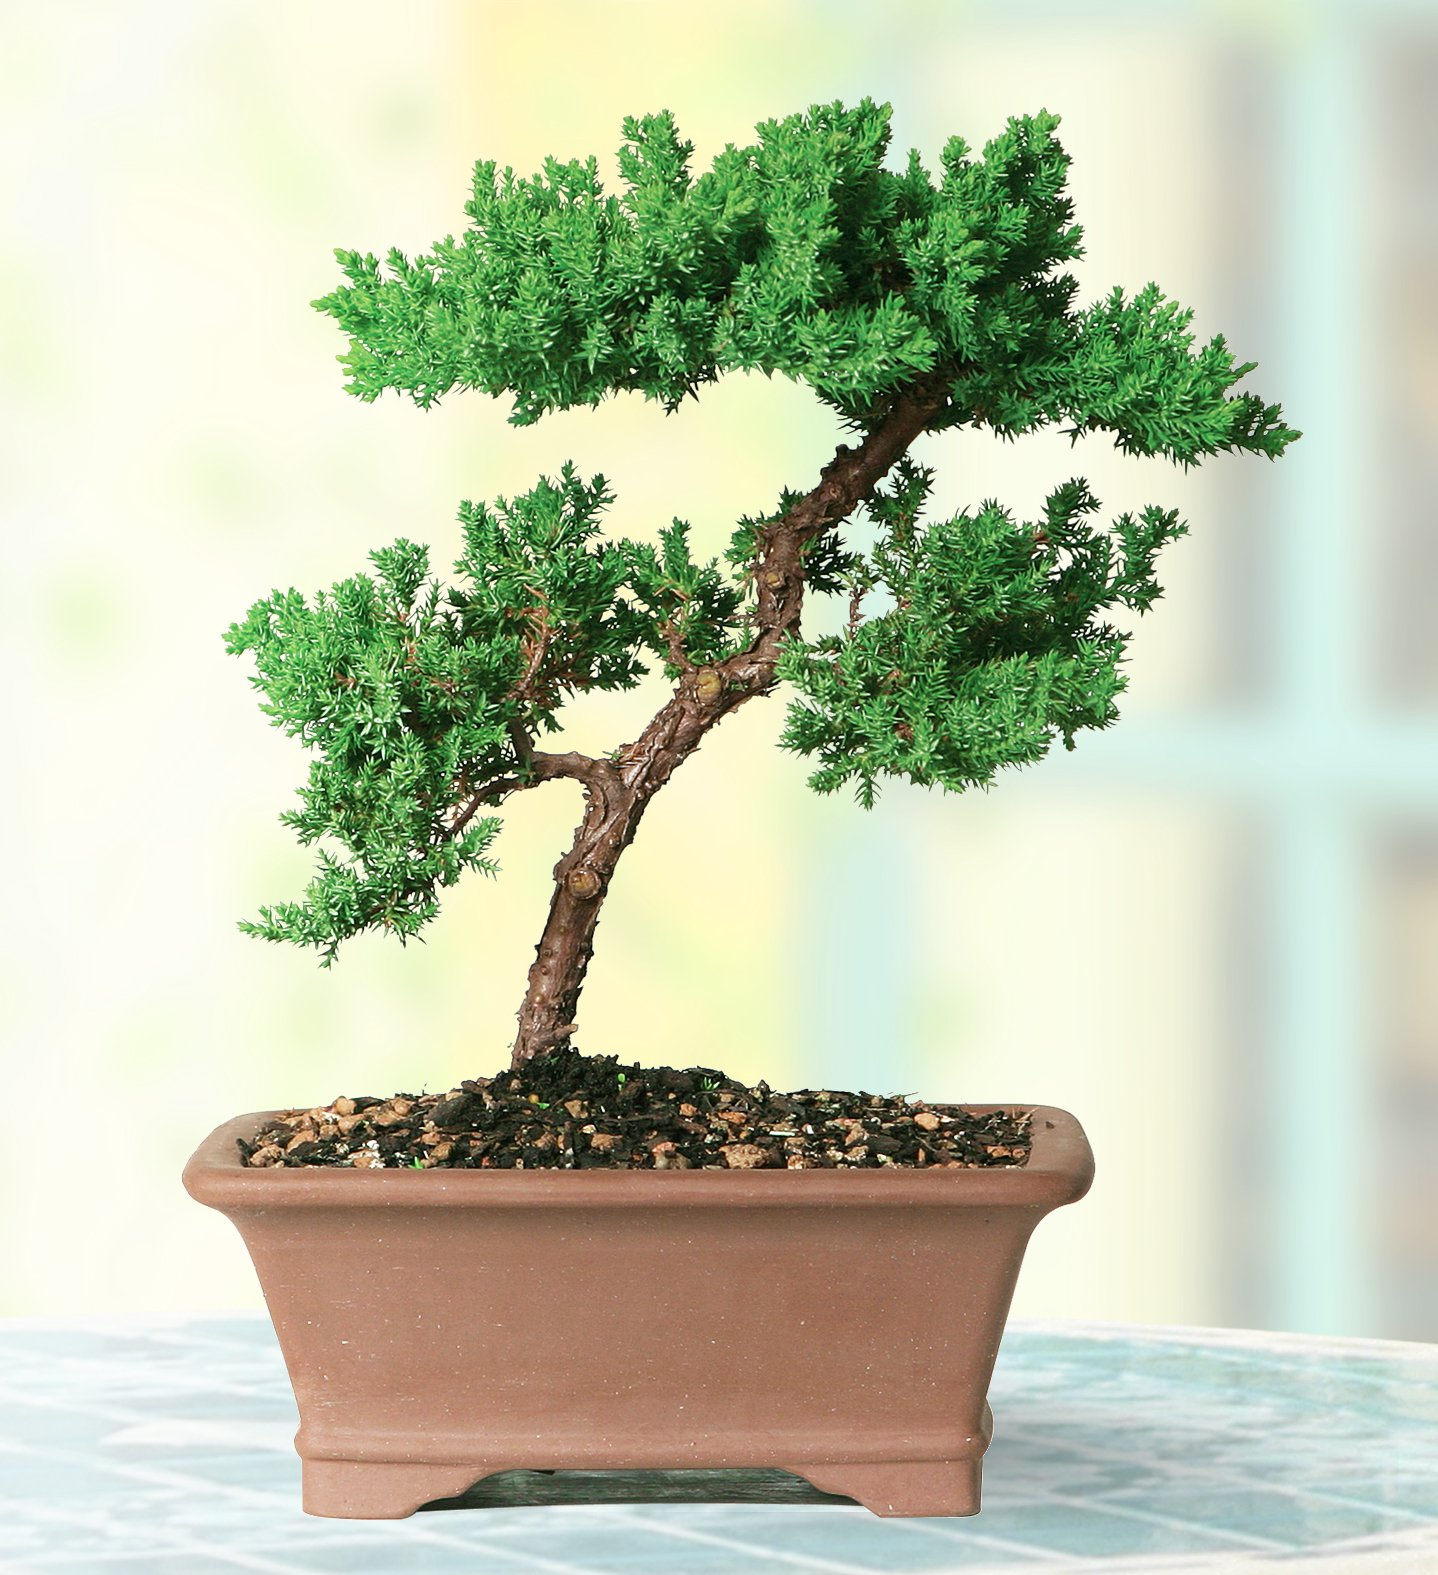 Brussel's Live Green Mound Juniper Outdoor Bonsai Tree - 5 Years Old; 6'' to 10'' Tall with Decorative by Brussel's Bonsai (Image #2)